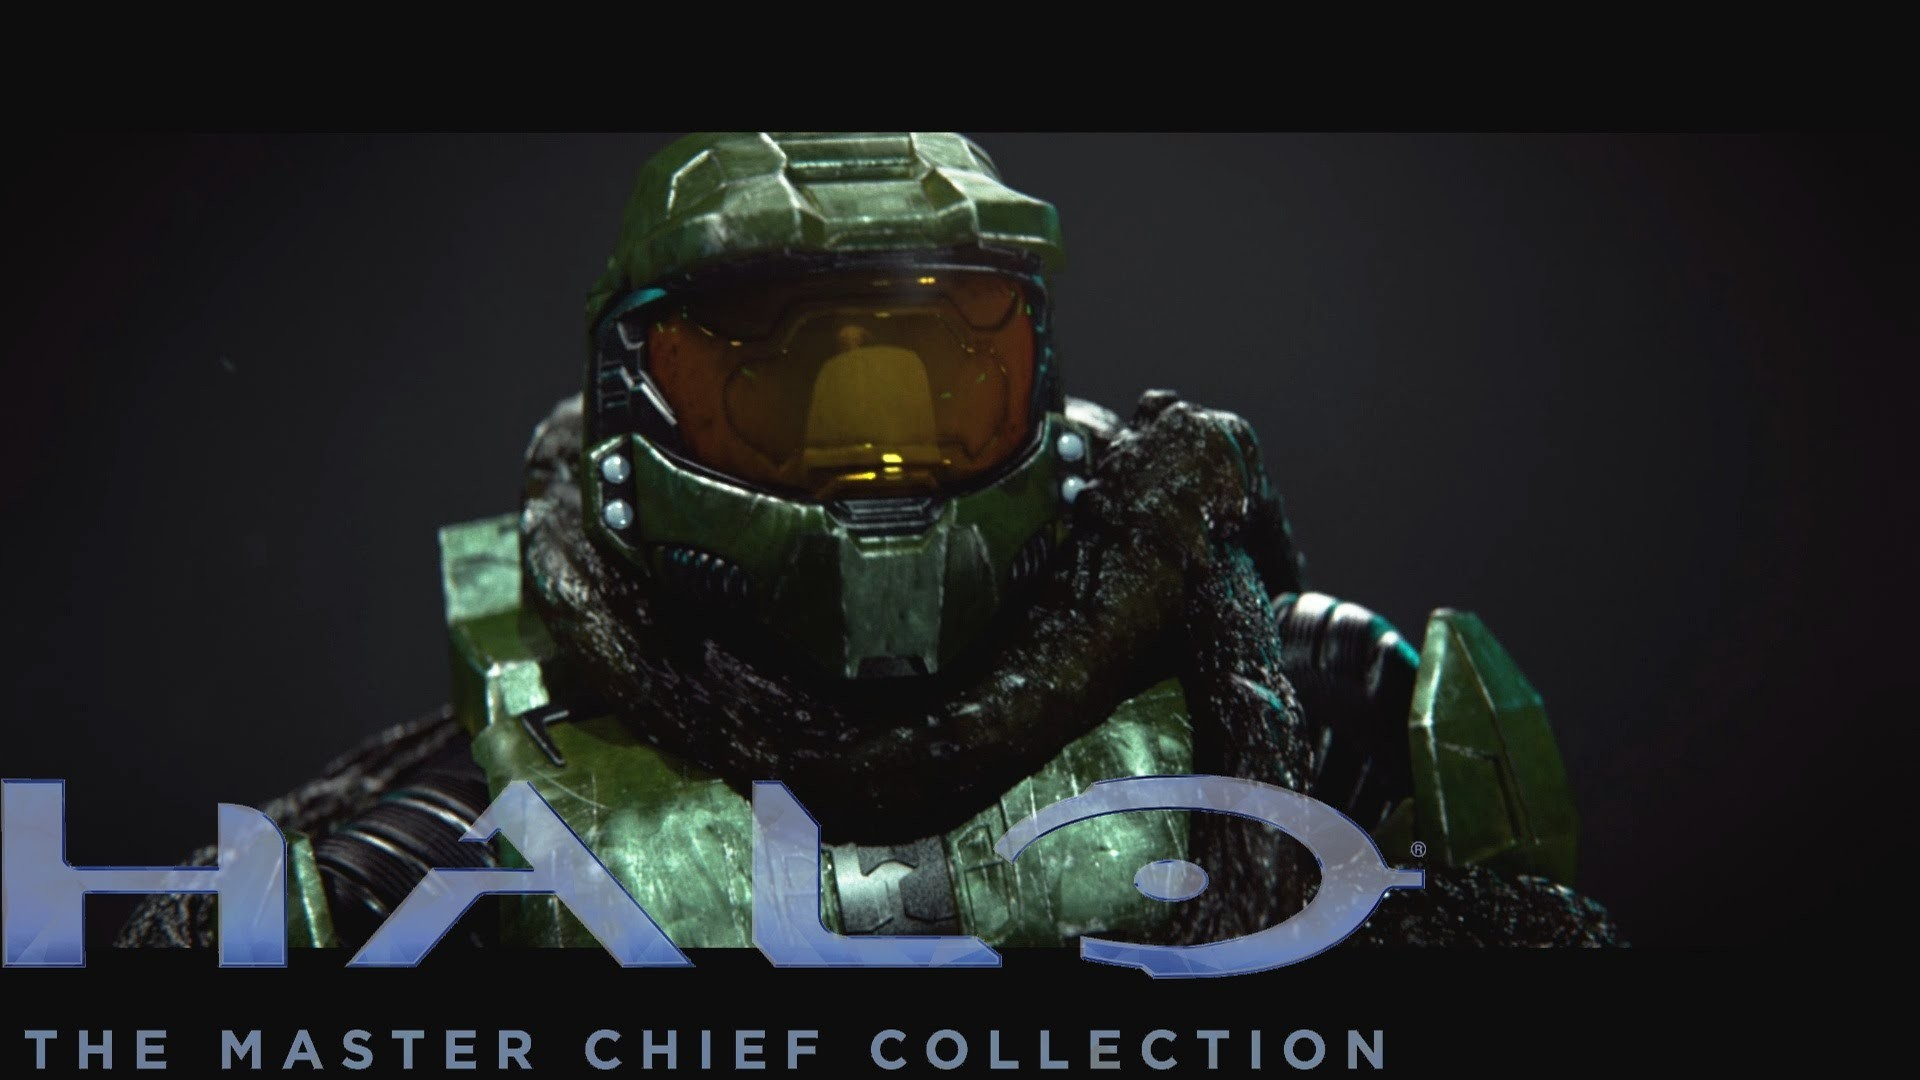 1920x1080 HALO Master Chief Collection GAMEPLAY - HALO 2 Anniversary CAMPAIGN  Gameplay 1080p 60fps! - YouTube